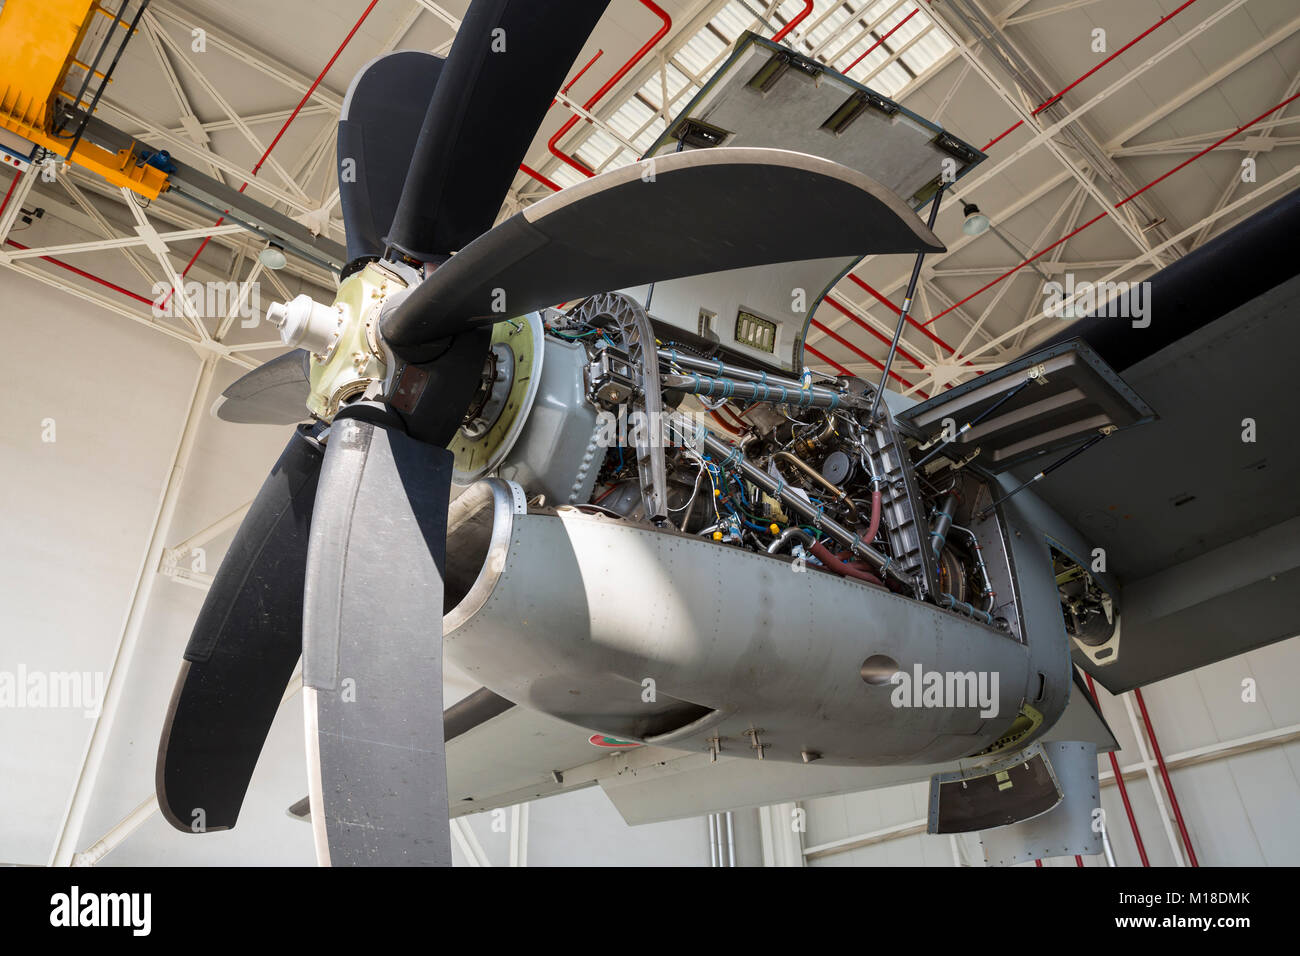 Aircraft engine maintenance  Airplane engine with propeller gets a